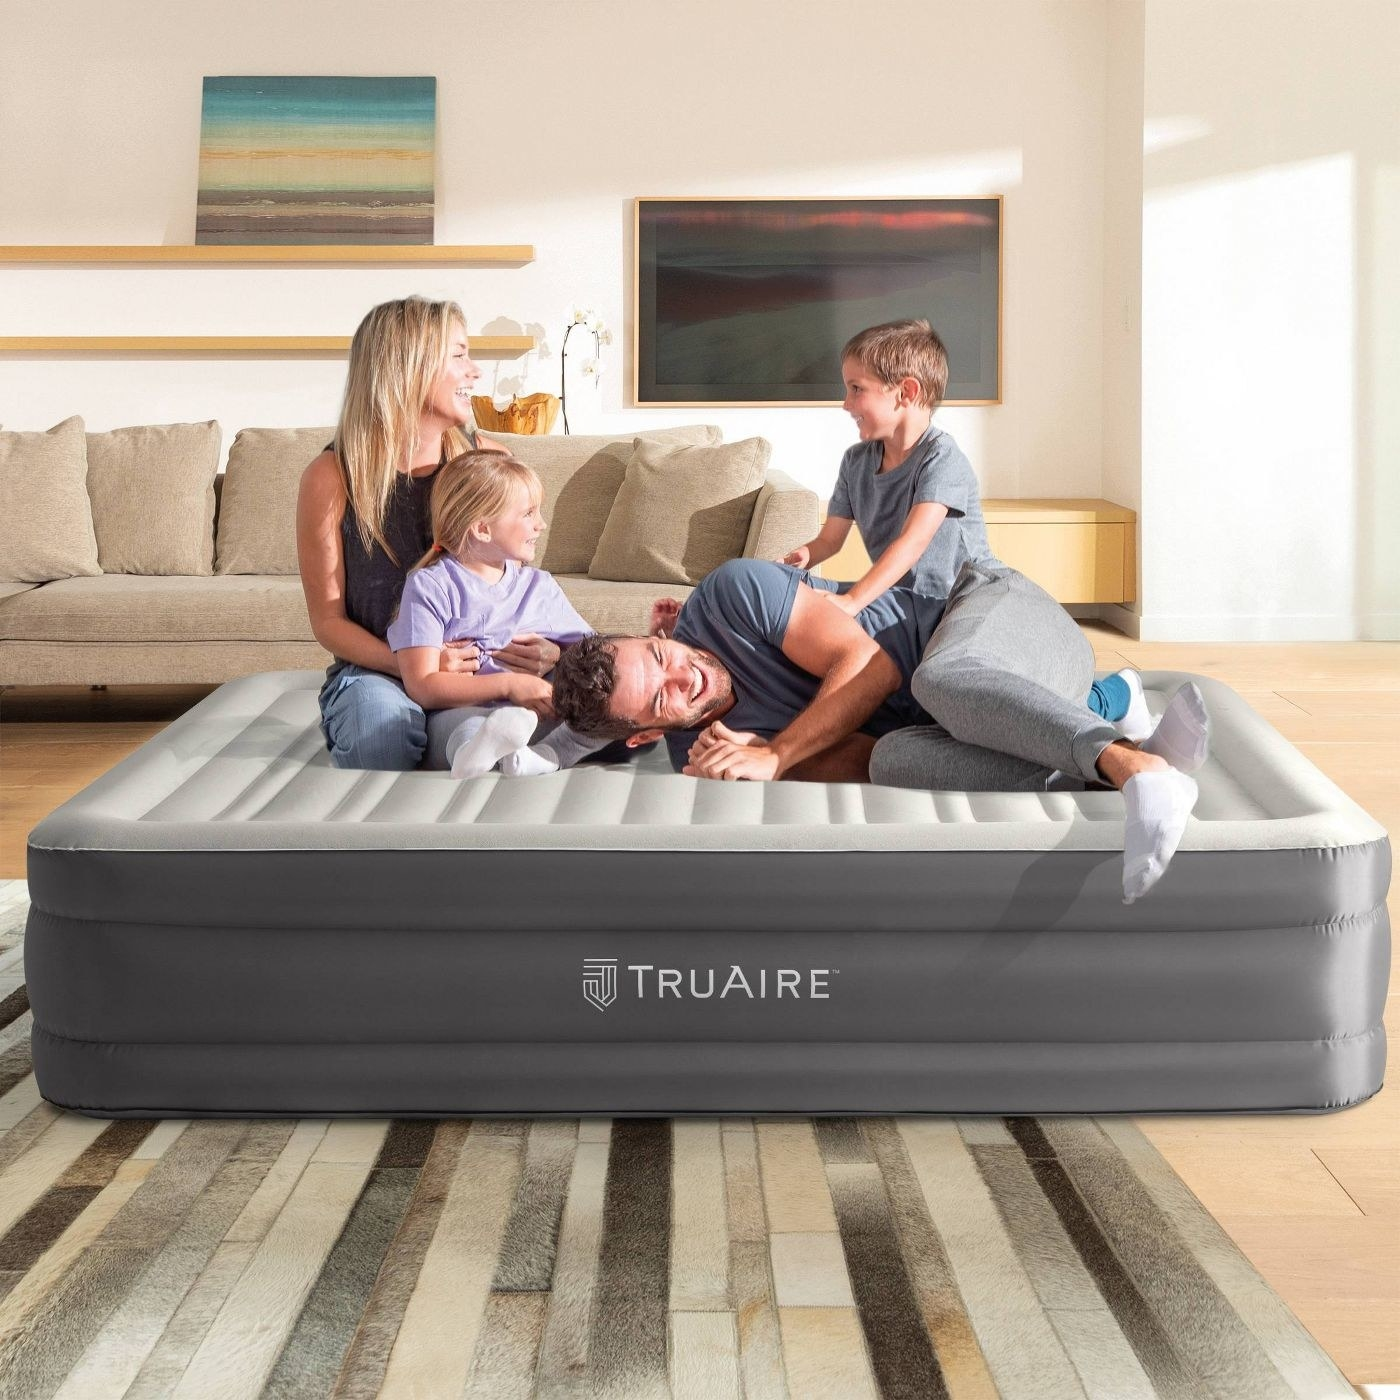 People resting on the air mattress in a living room